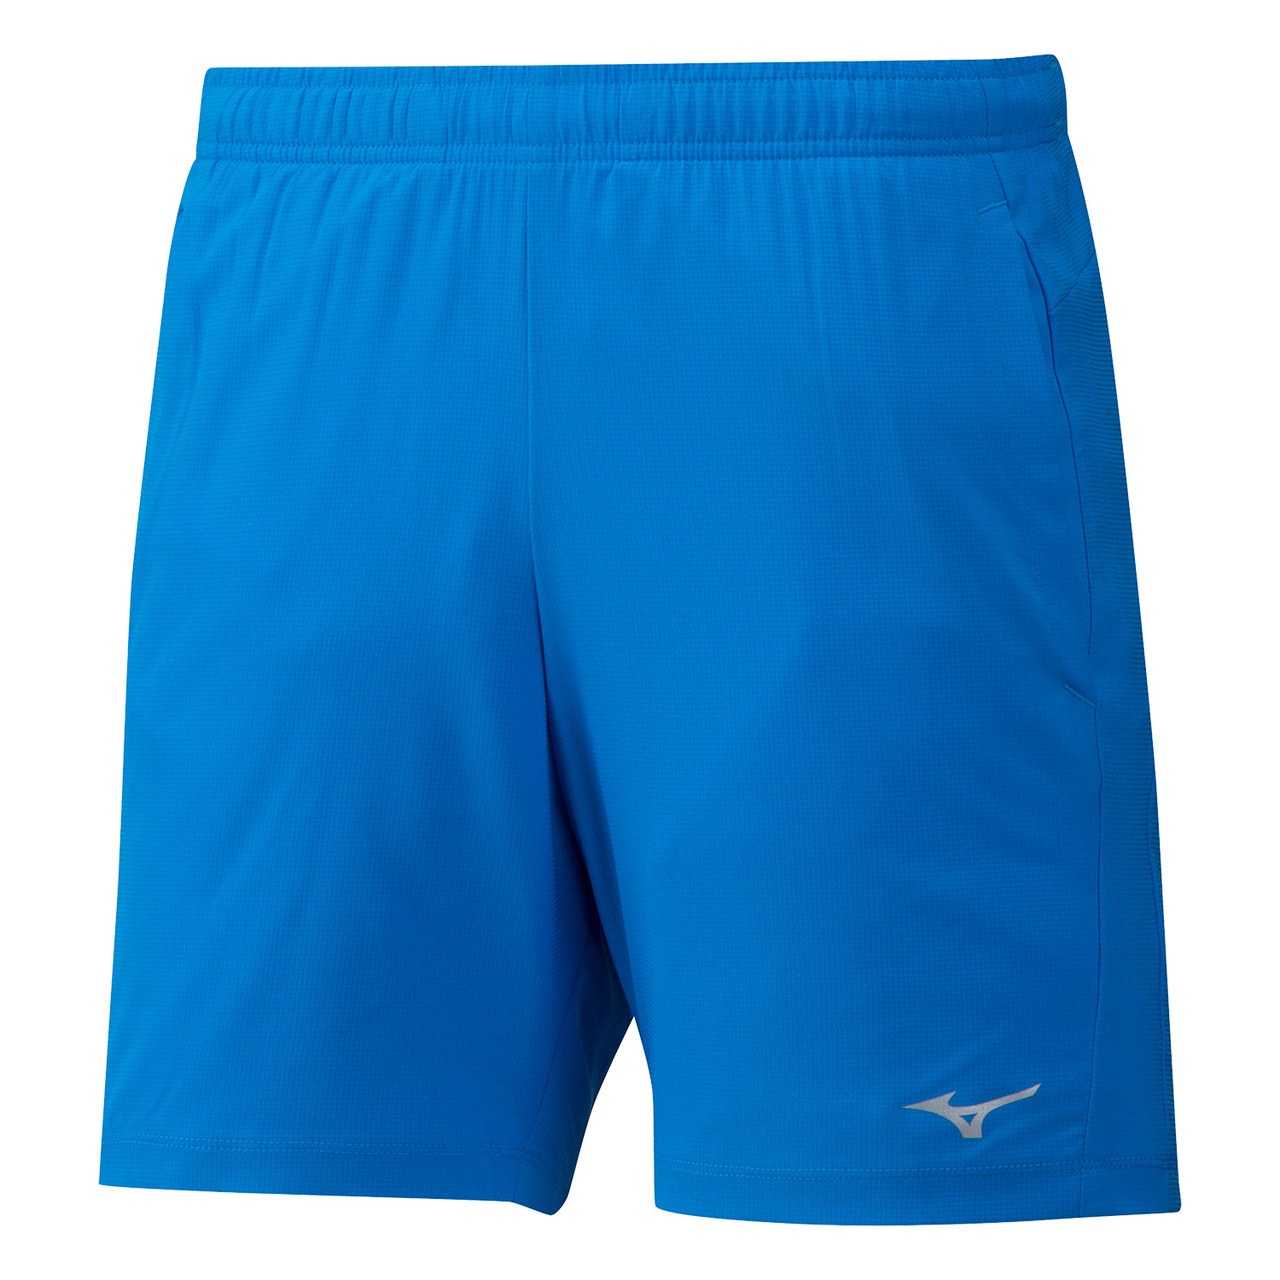 Шорты Mizuno Impulse Core 7.0 Short J2GB9002-24